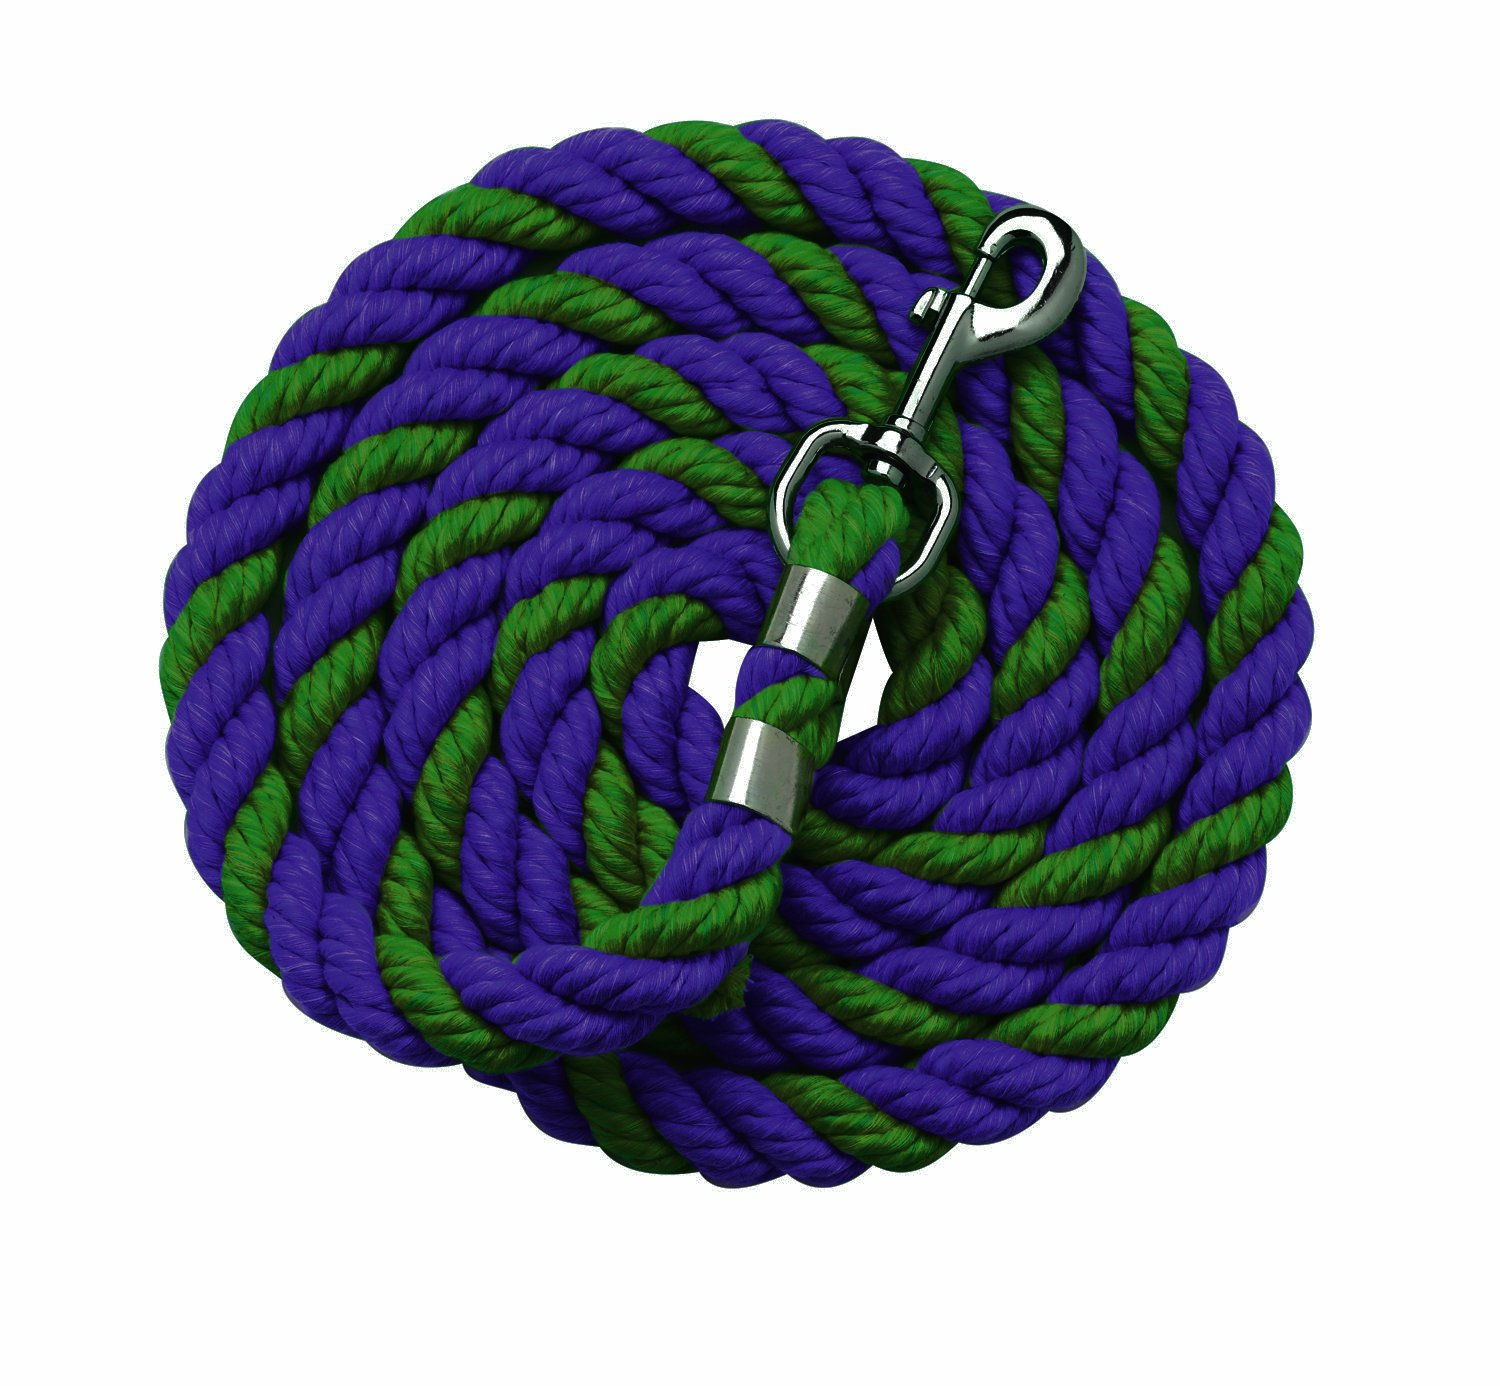 Navy Hunter Green Perri's Cotton Multi-colord Leads, 6-Feet